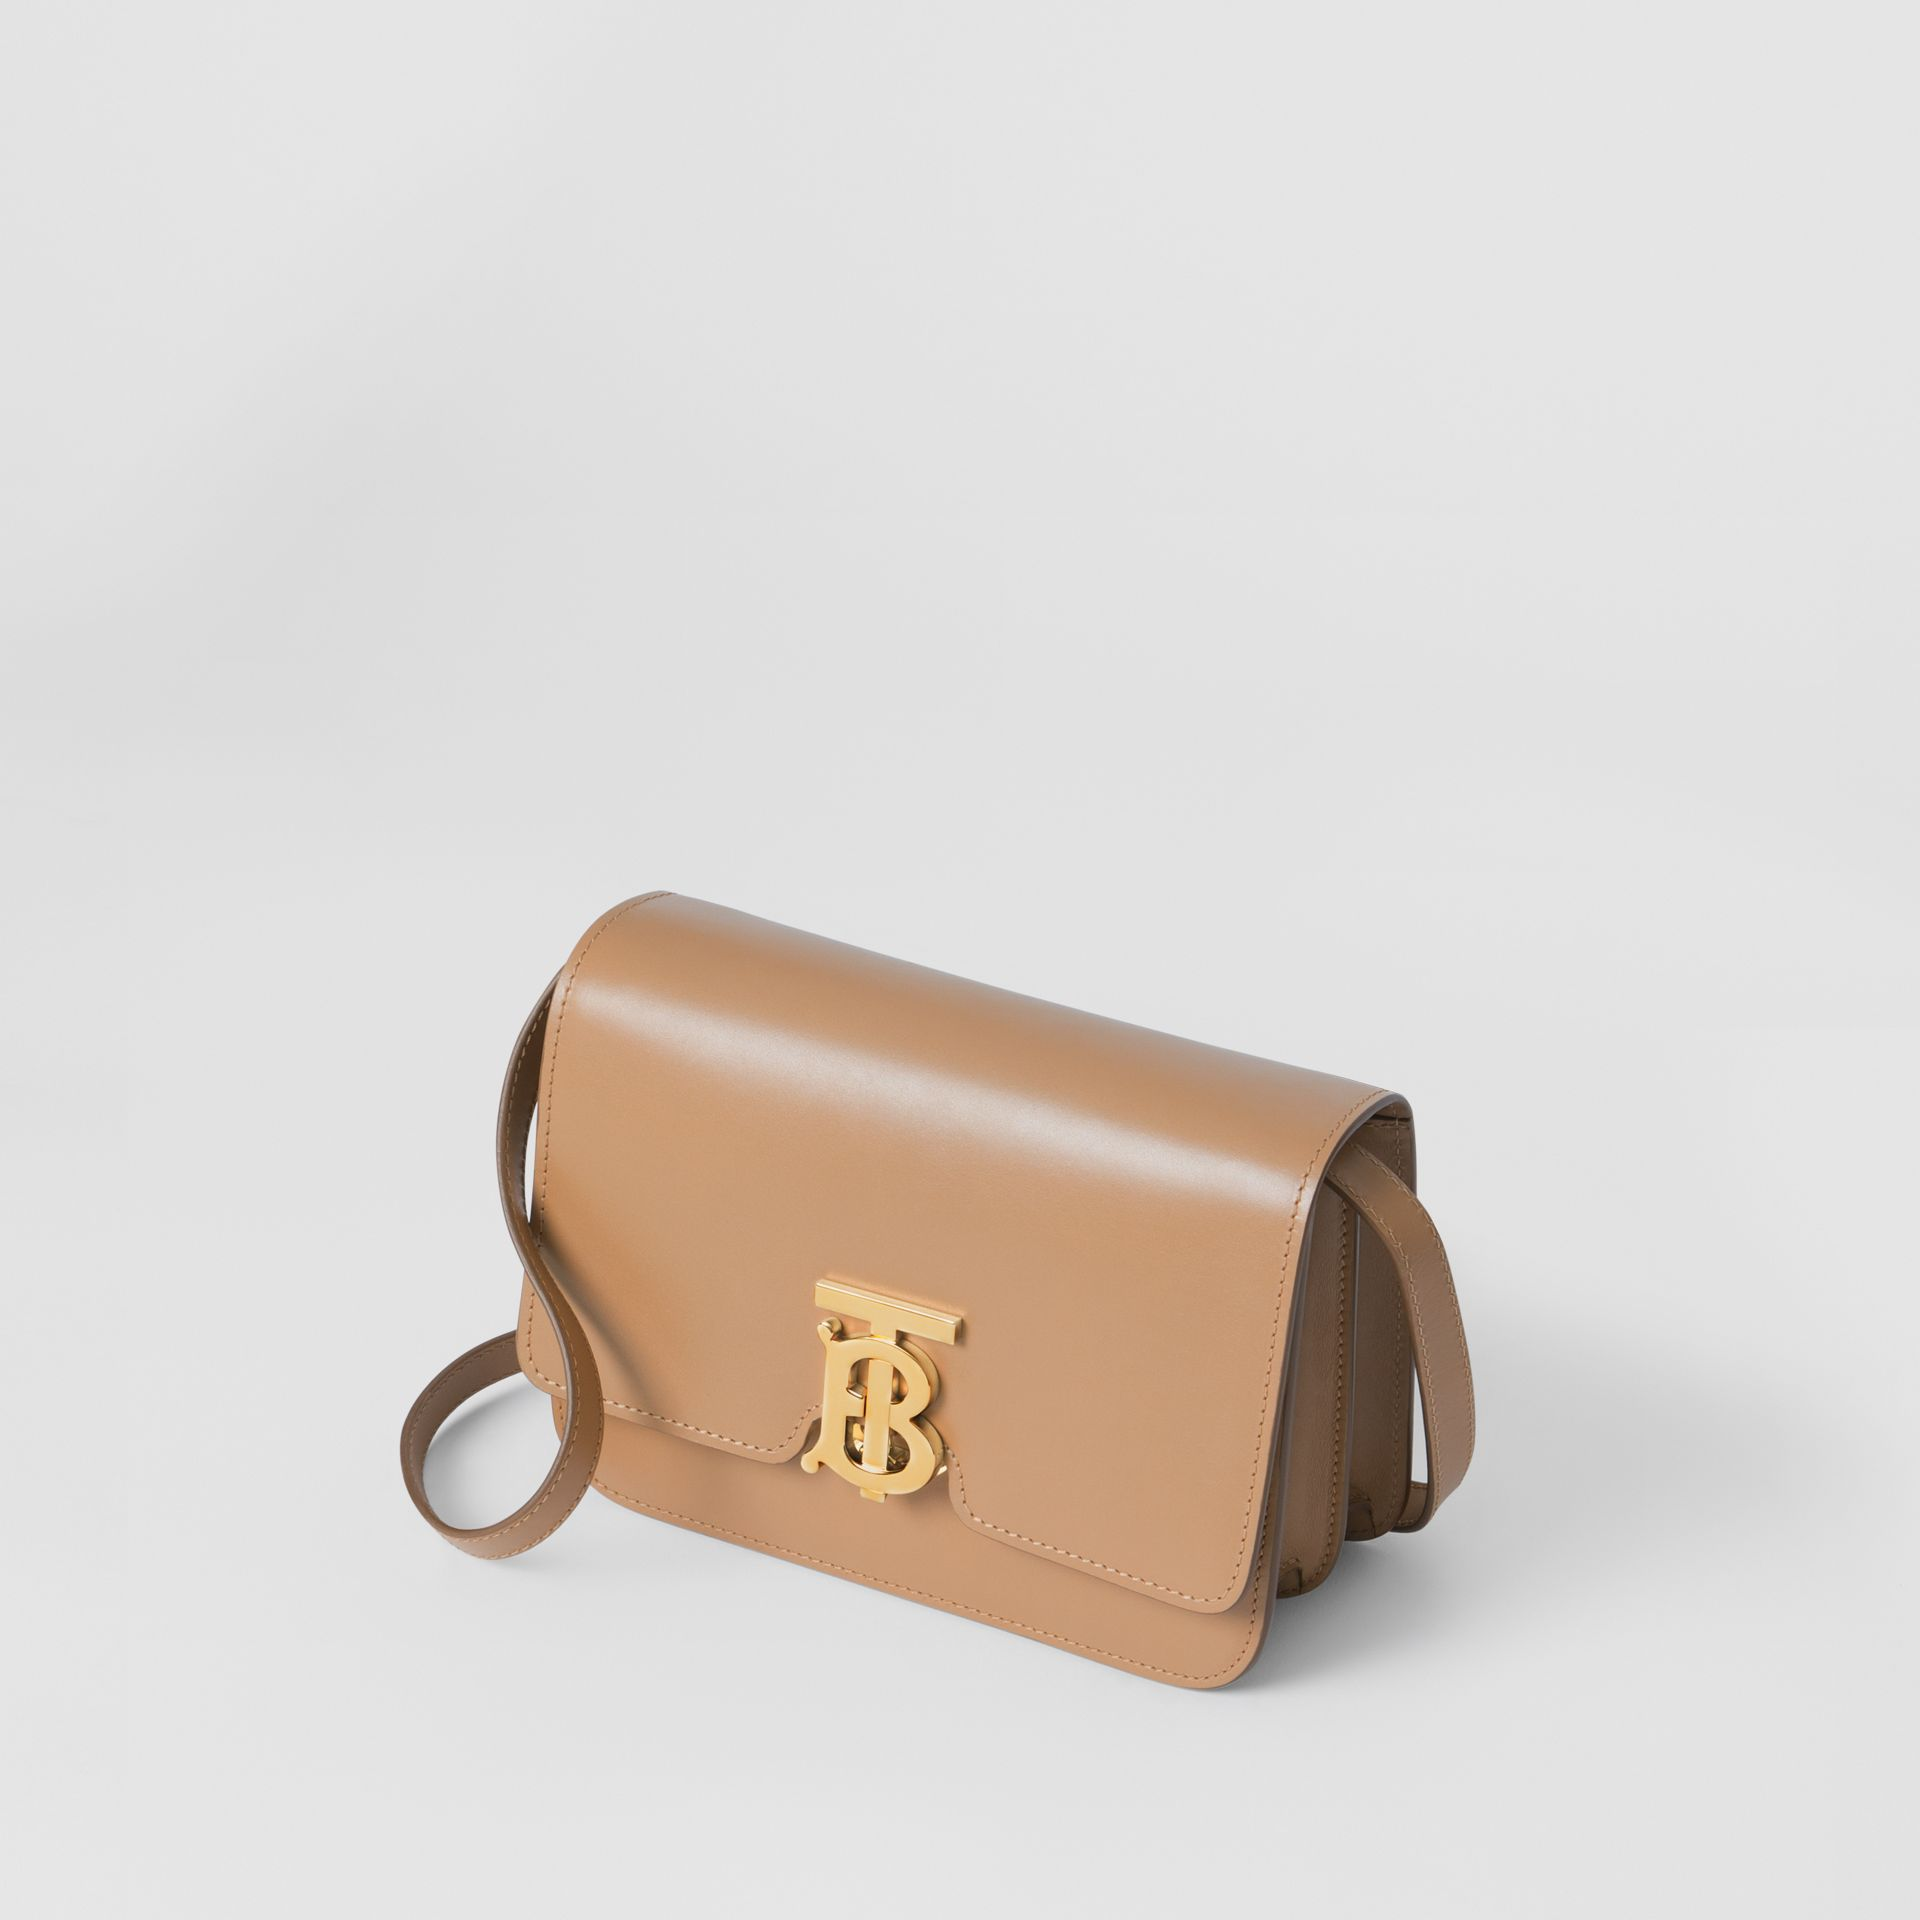 Small Leather TB Bag in Light Camel - Women | Burberry United Kingdom - gallery image 3